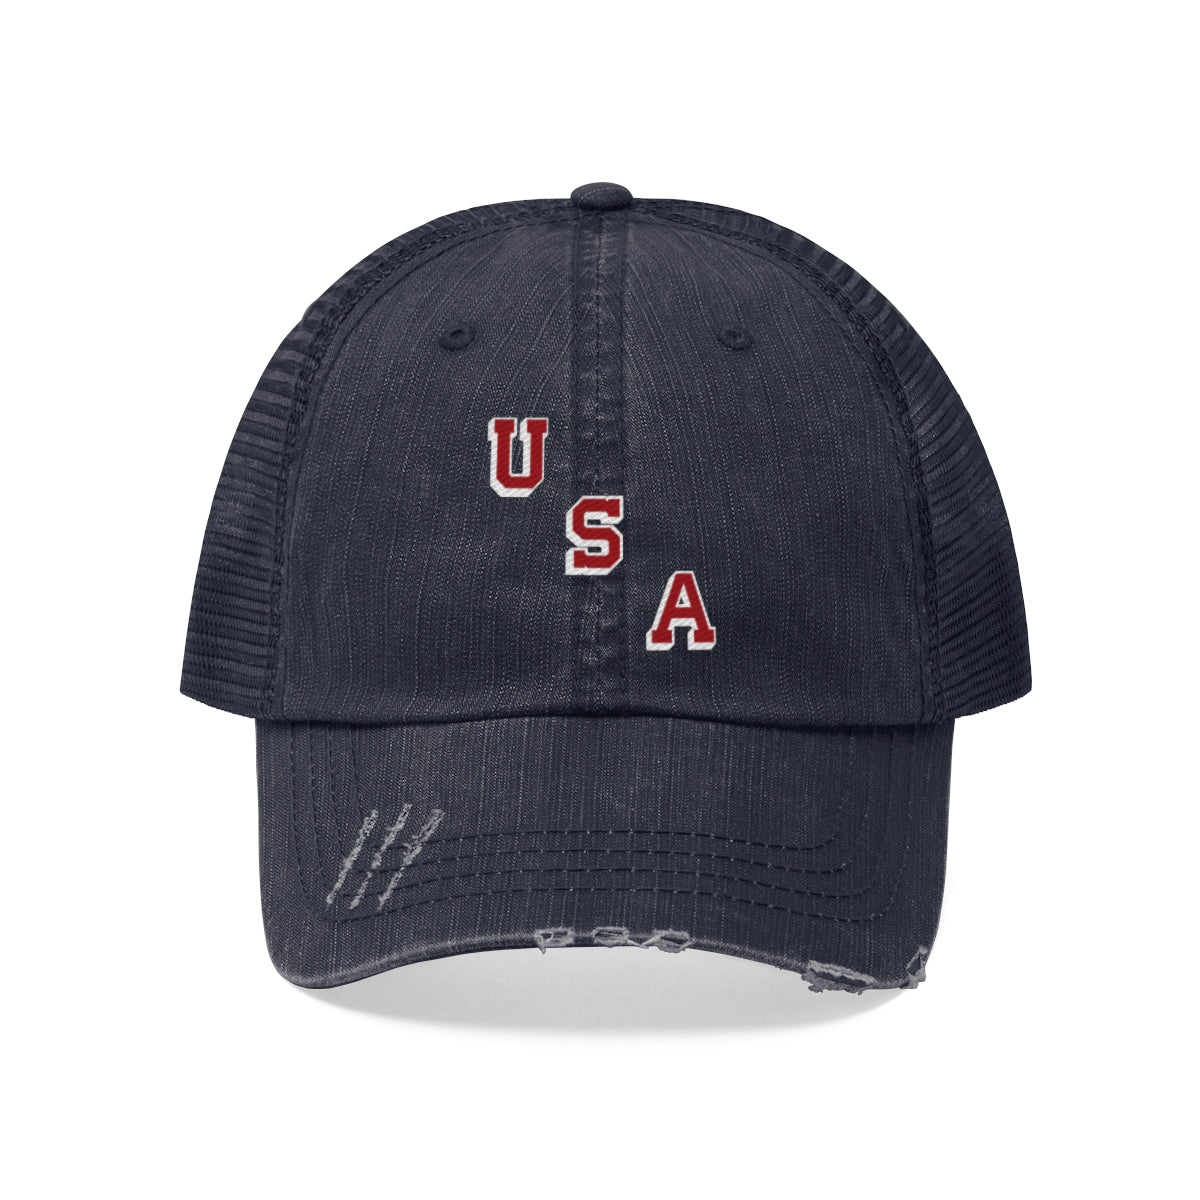 1960 USA Forgotten Miracle Unisex Trucker Hat